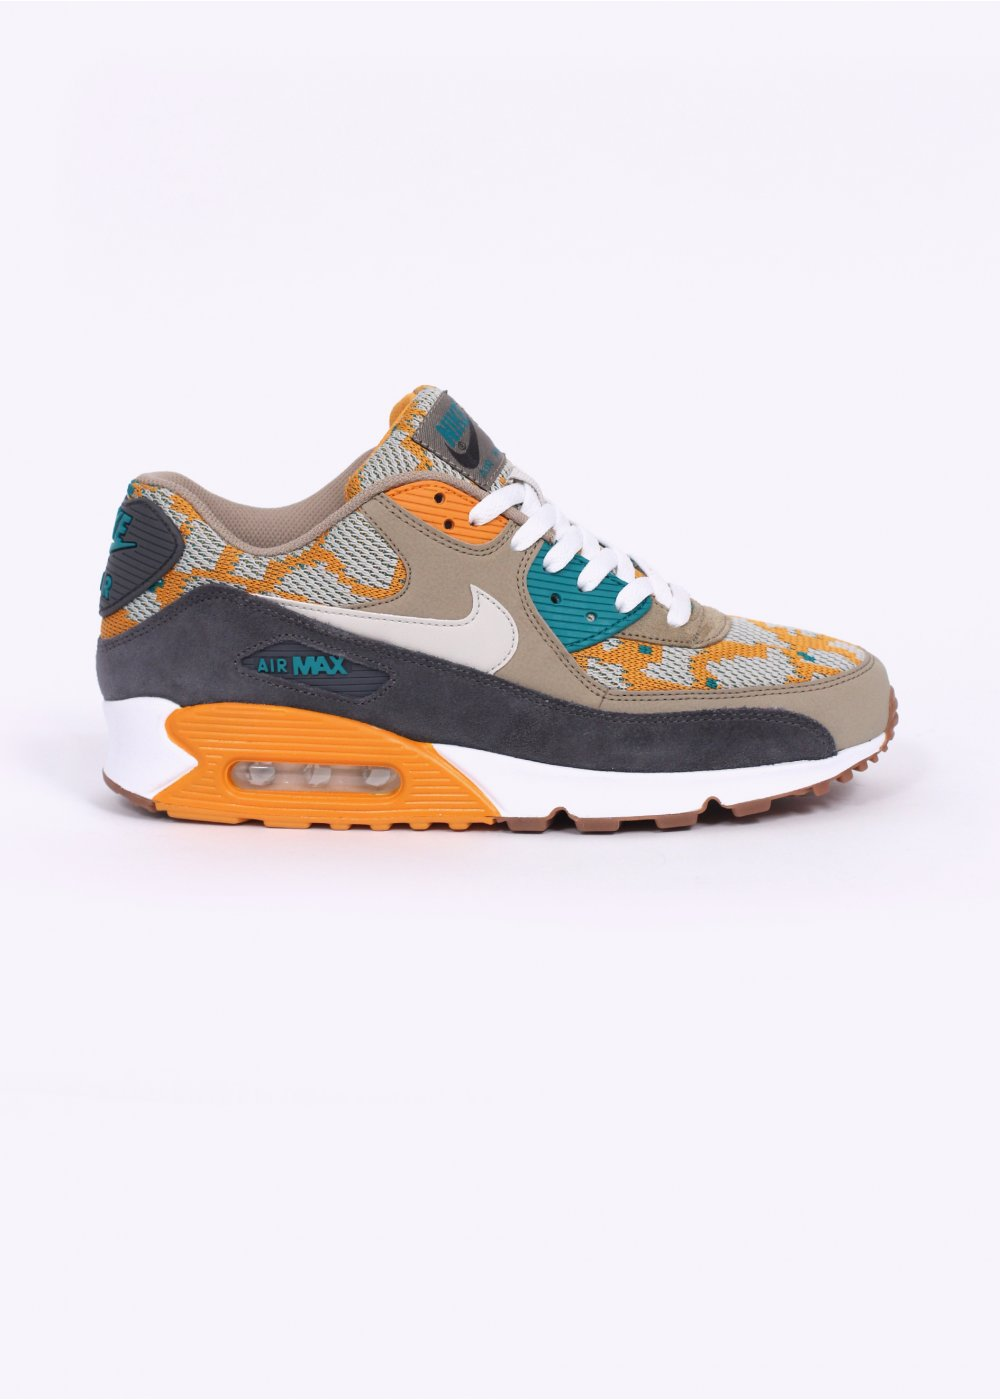 best service 2c983 d69a9 Nike Air Max 90 PA Trainers - Canyon Gold   Light Bone